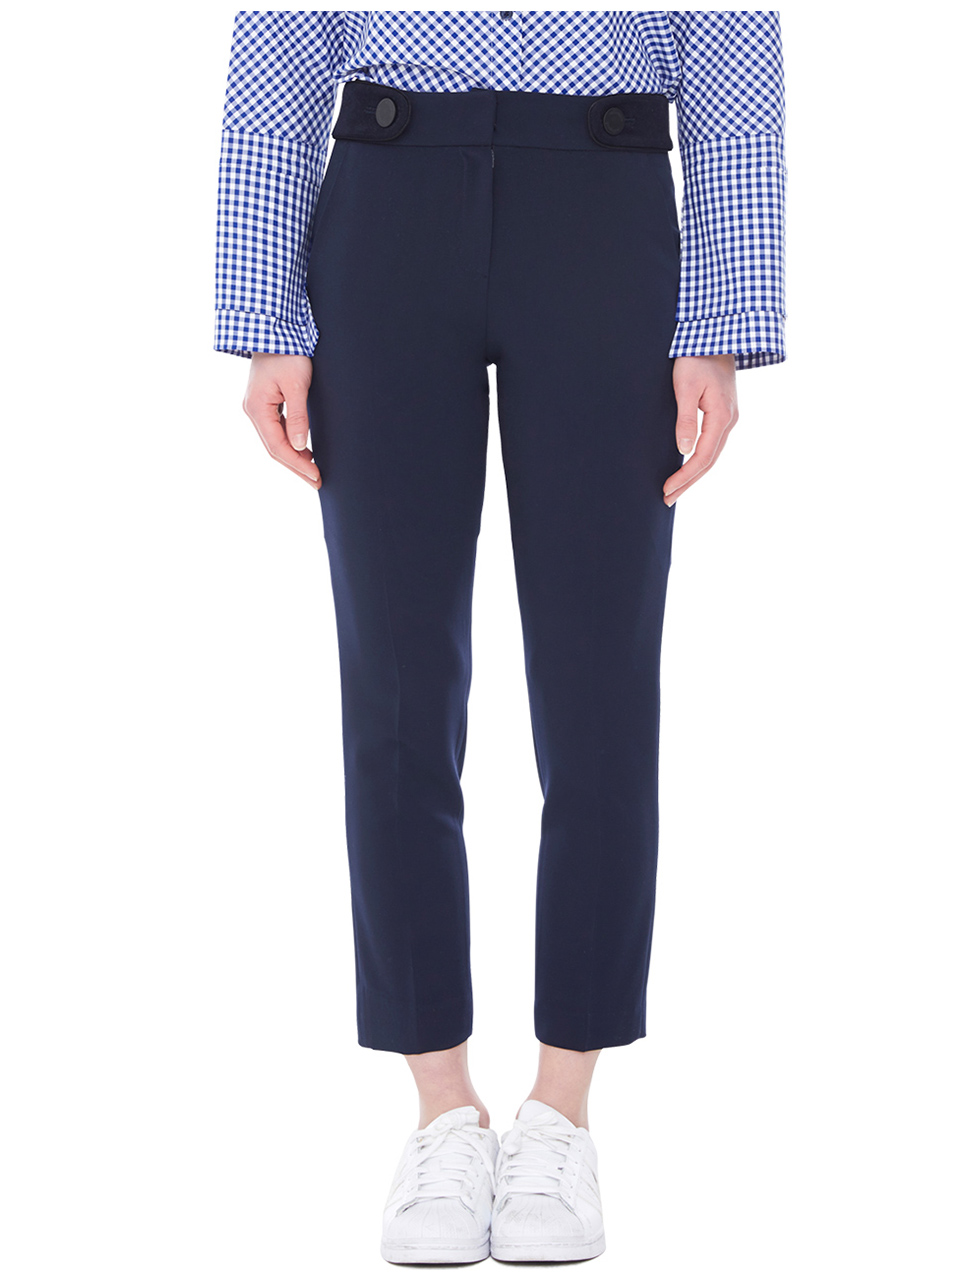 belted slim pants - navy